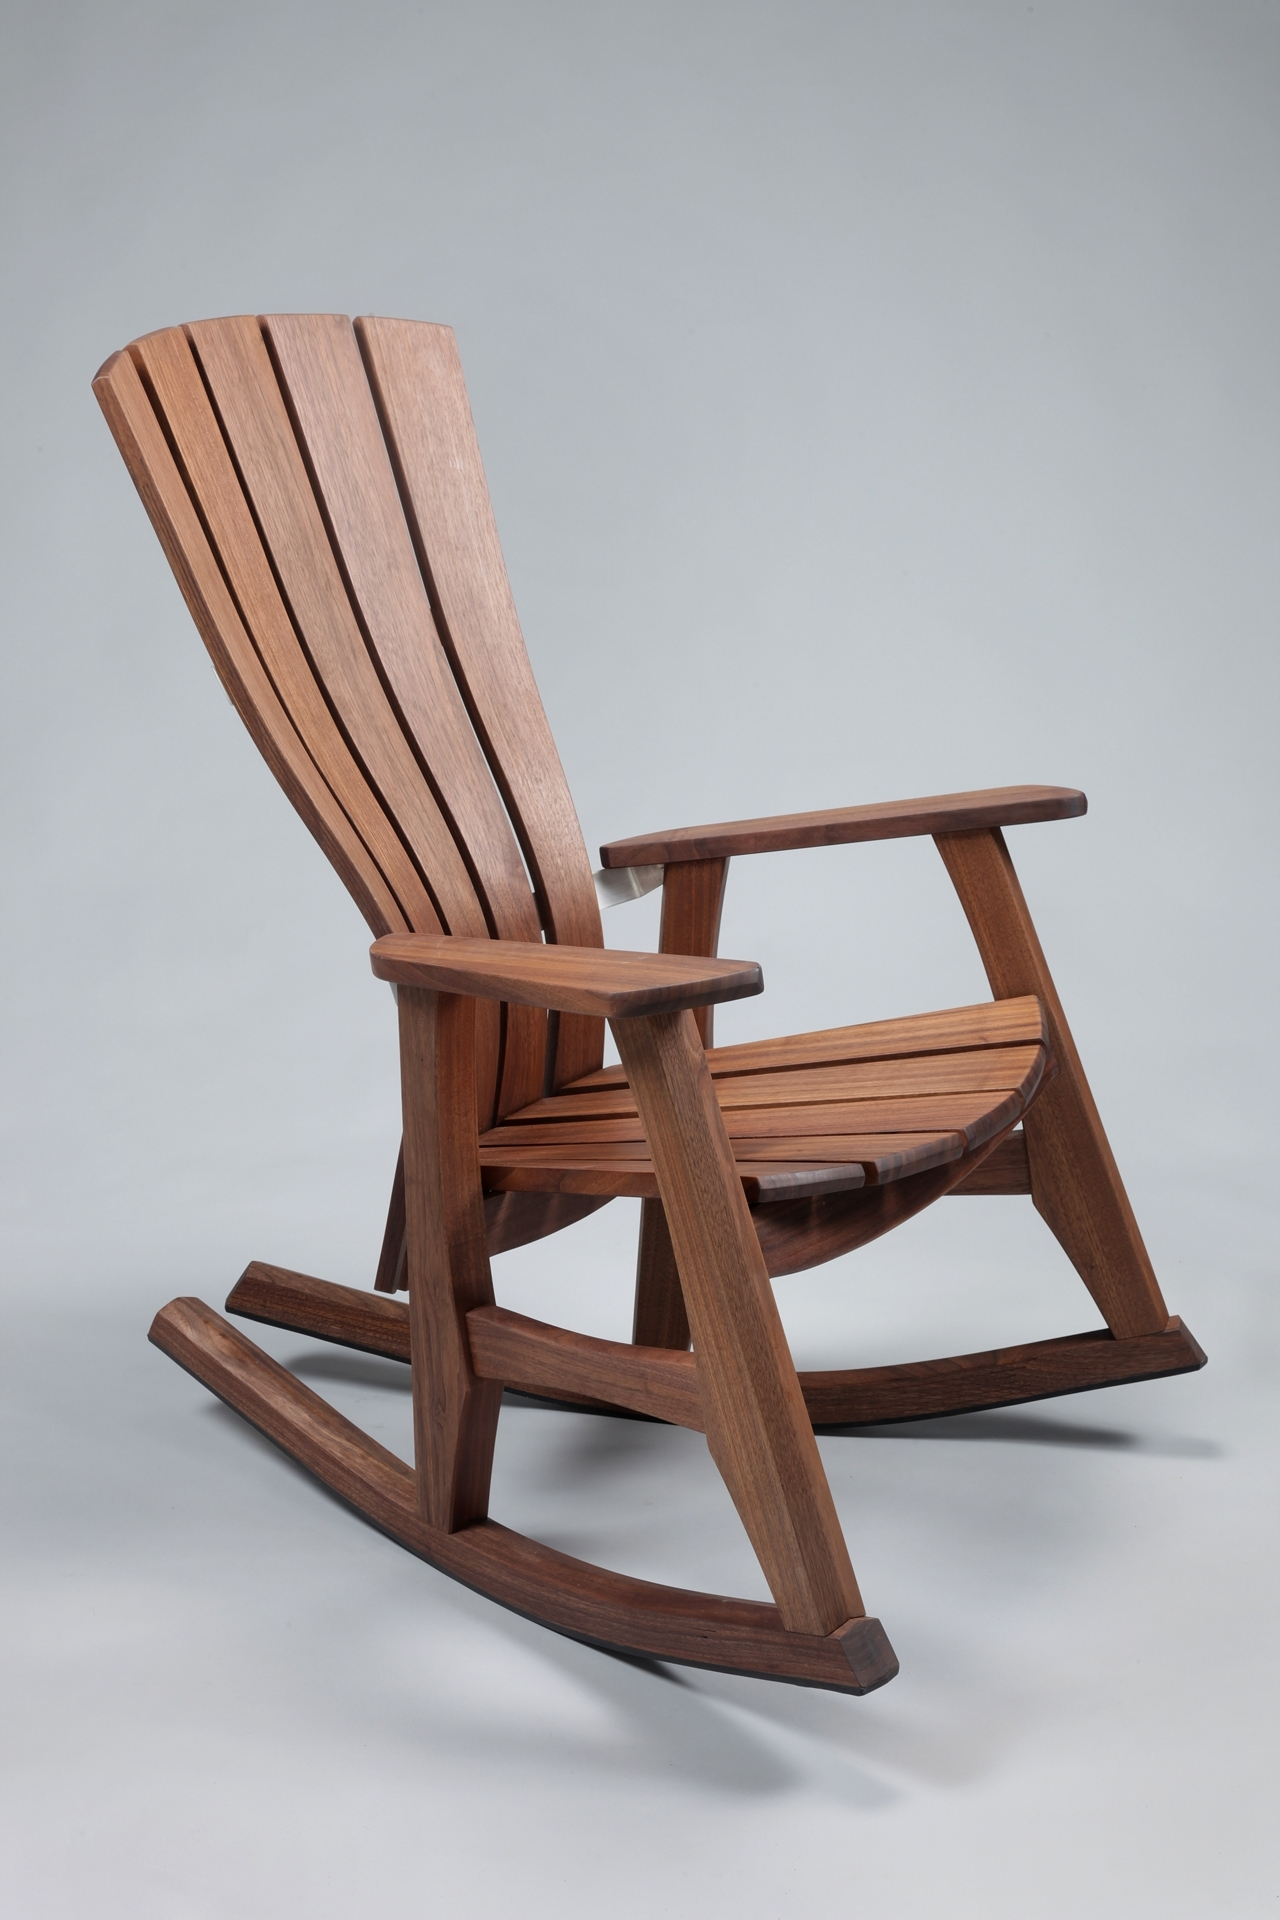 Vintage Outdoor Rocking Chairs In Well Liked Pleasure Outdoor Wooden Rocking Chairs (View 14 of 20)